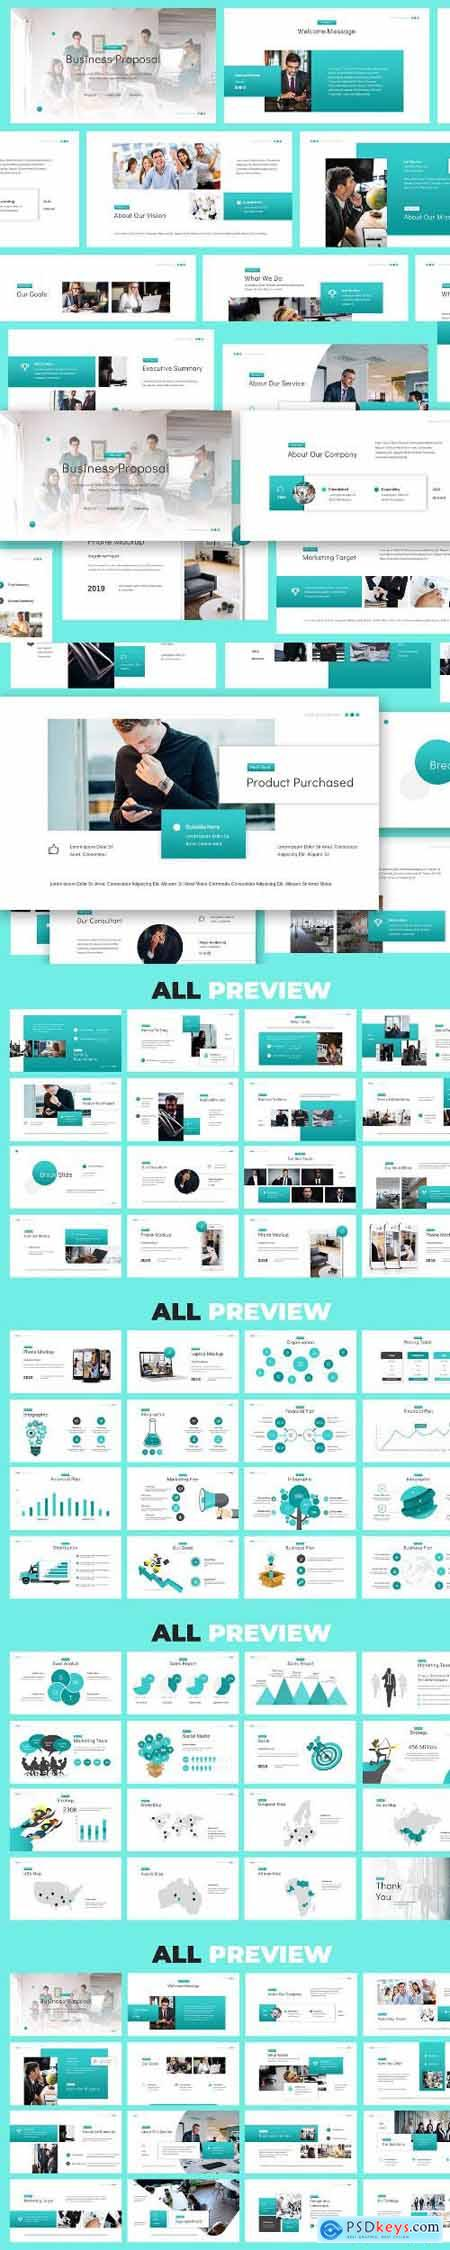 Business Proposal Powerpoint Presentation